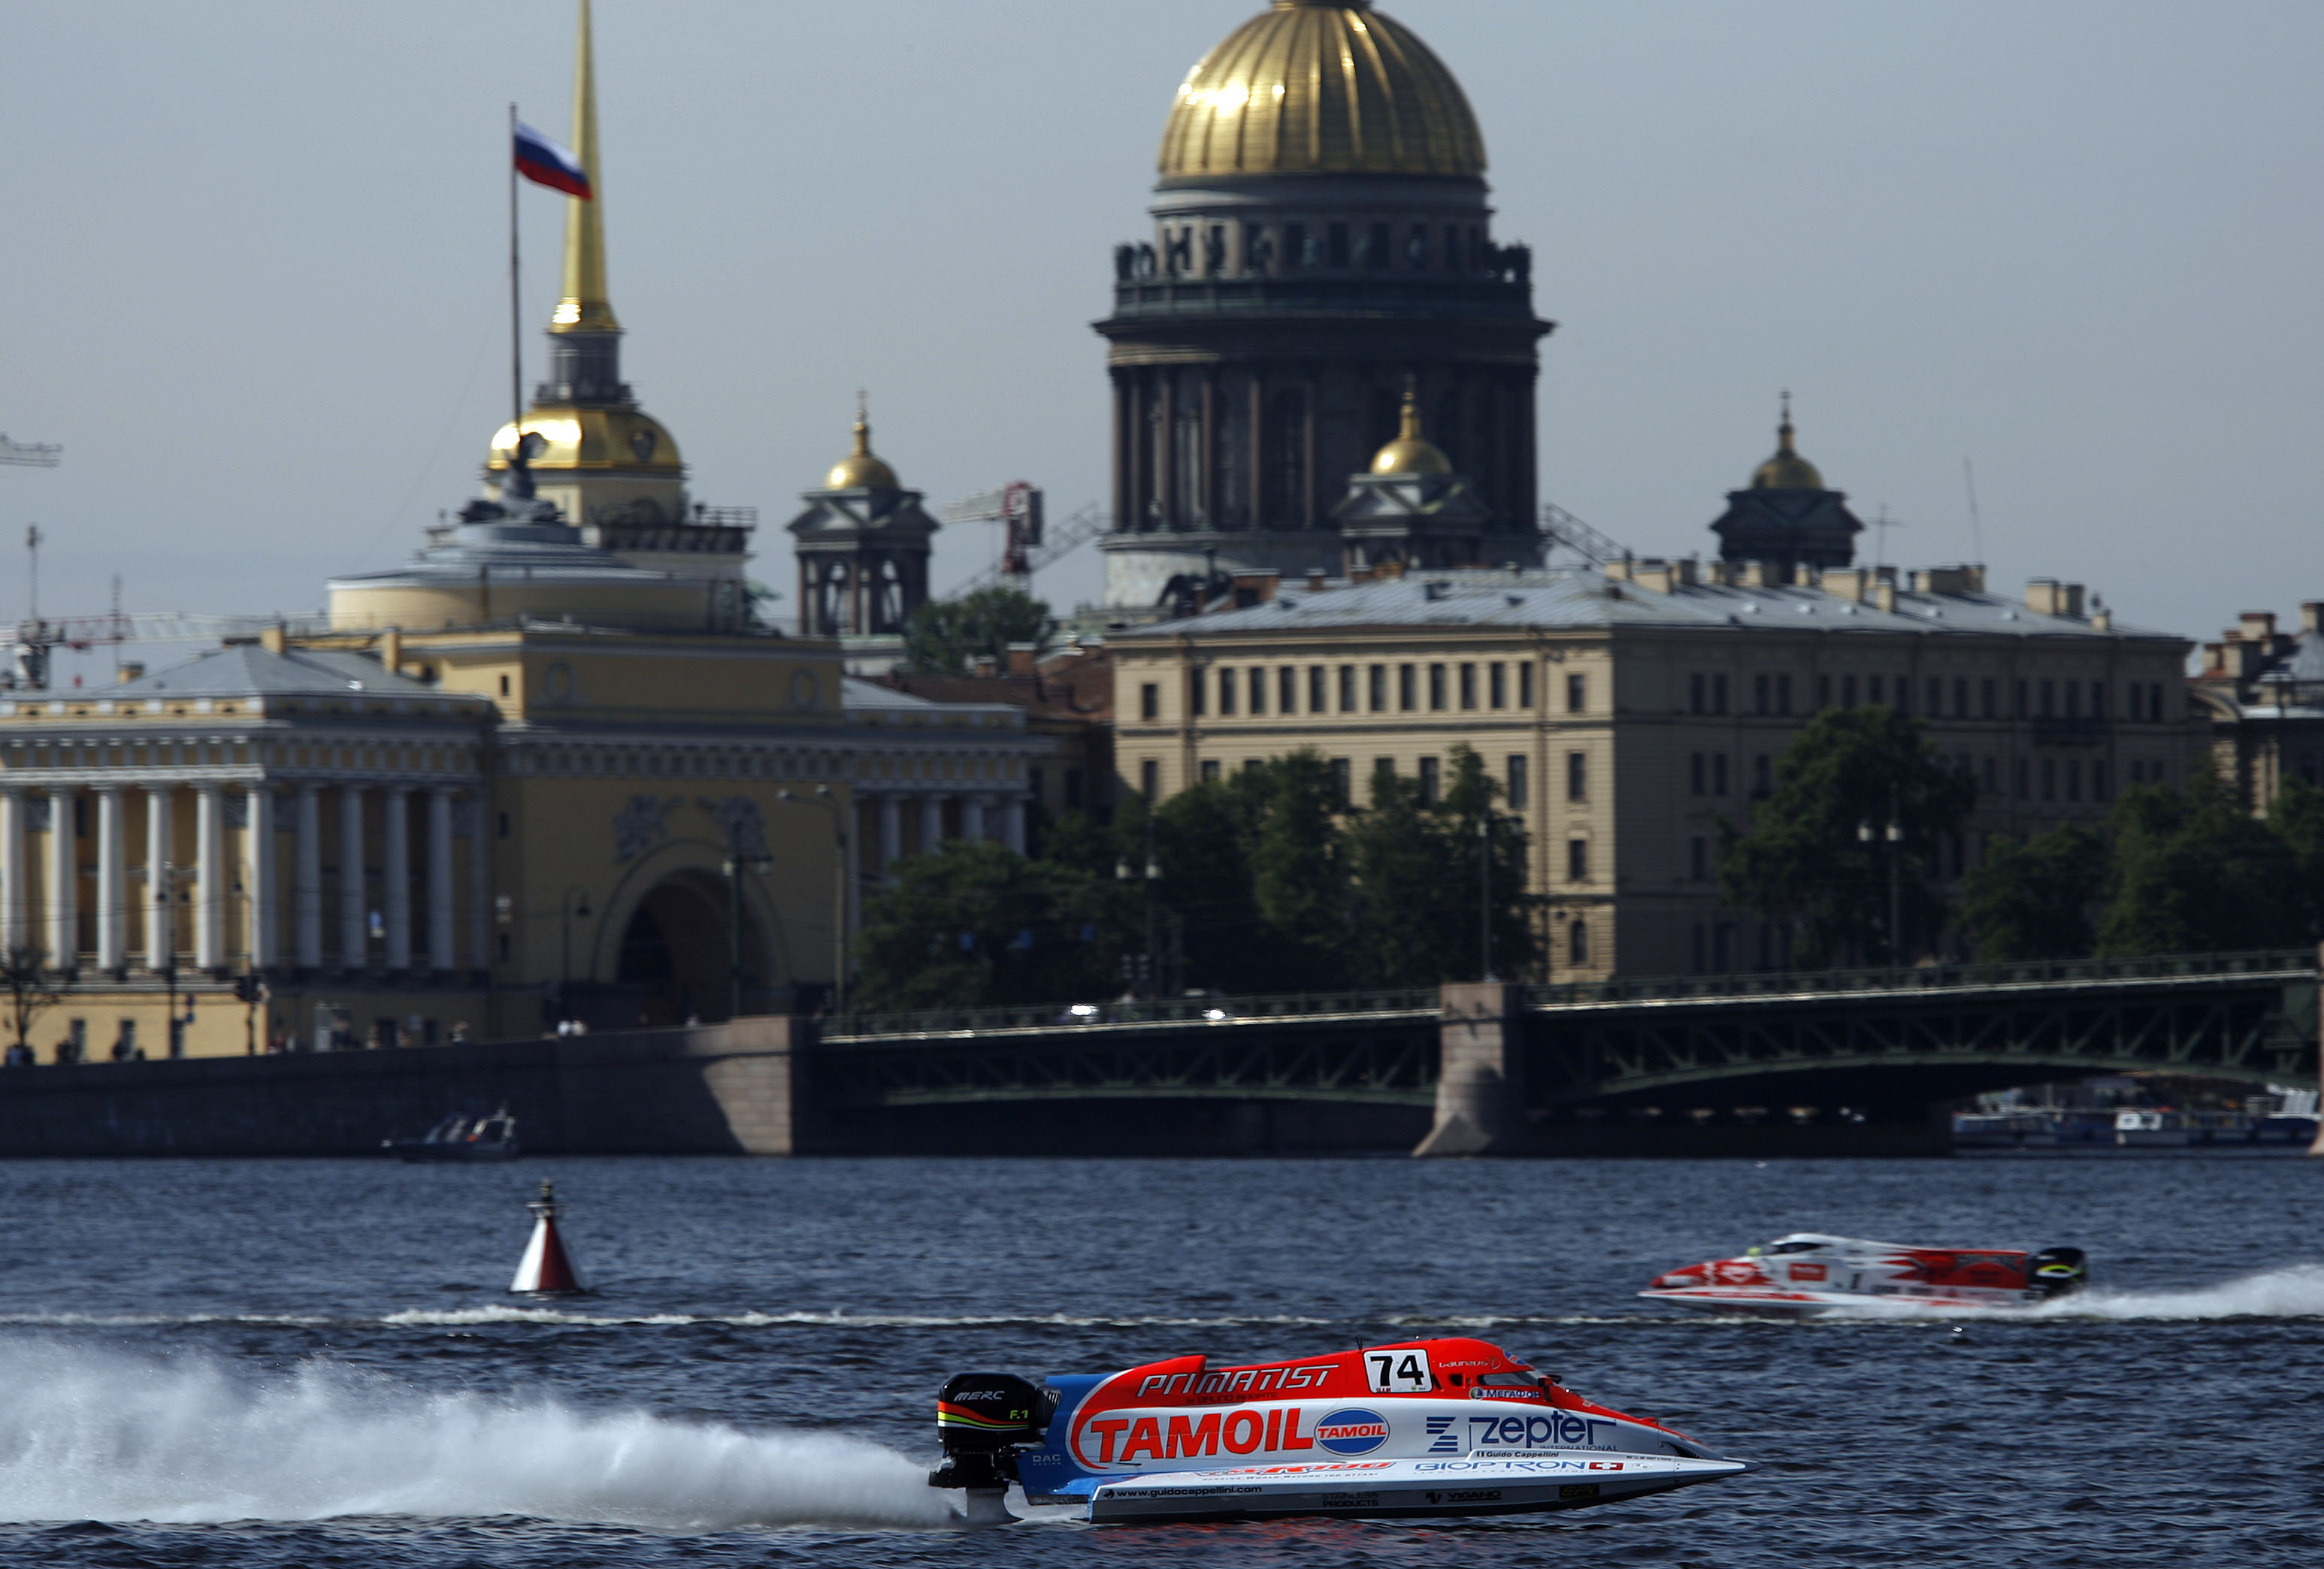 GP OF ST PETERSBURG-140608-PL-Guido Cappellini of Italy of the Tamoil F1 powerboat team pictured during the time trials on the Neva River in St Petersburg, Russia, venue of the UIM F1 powerboat Grand Prix, the 4th leg of the world championship series. Picture by Paul Lakatos/Idea Marketing.